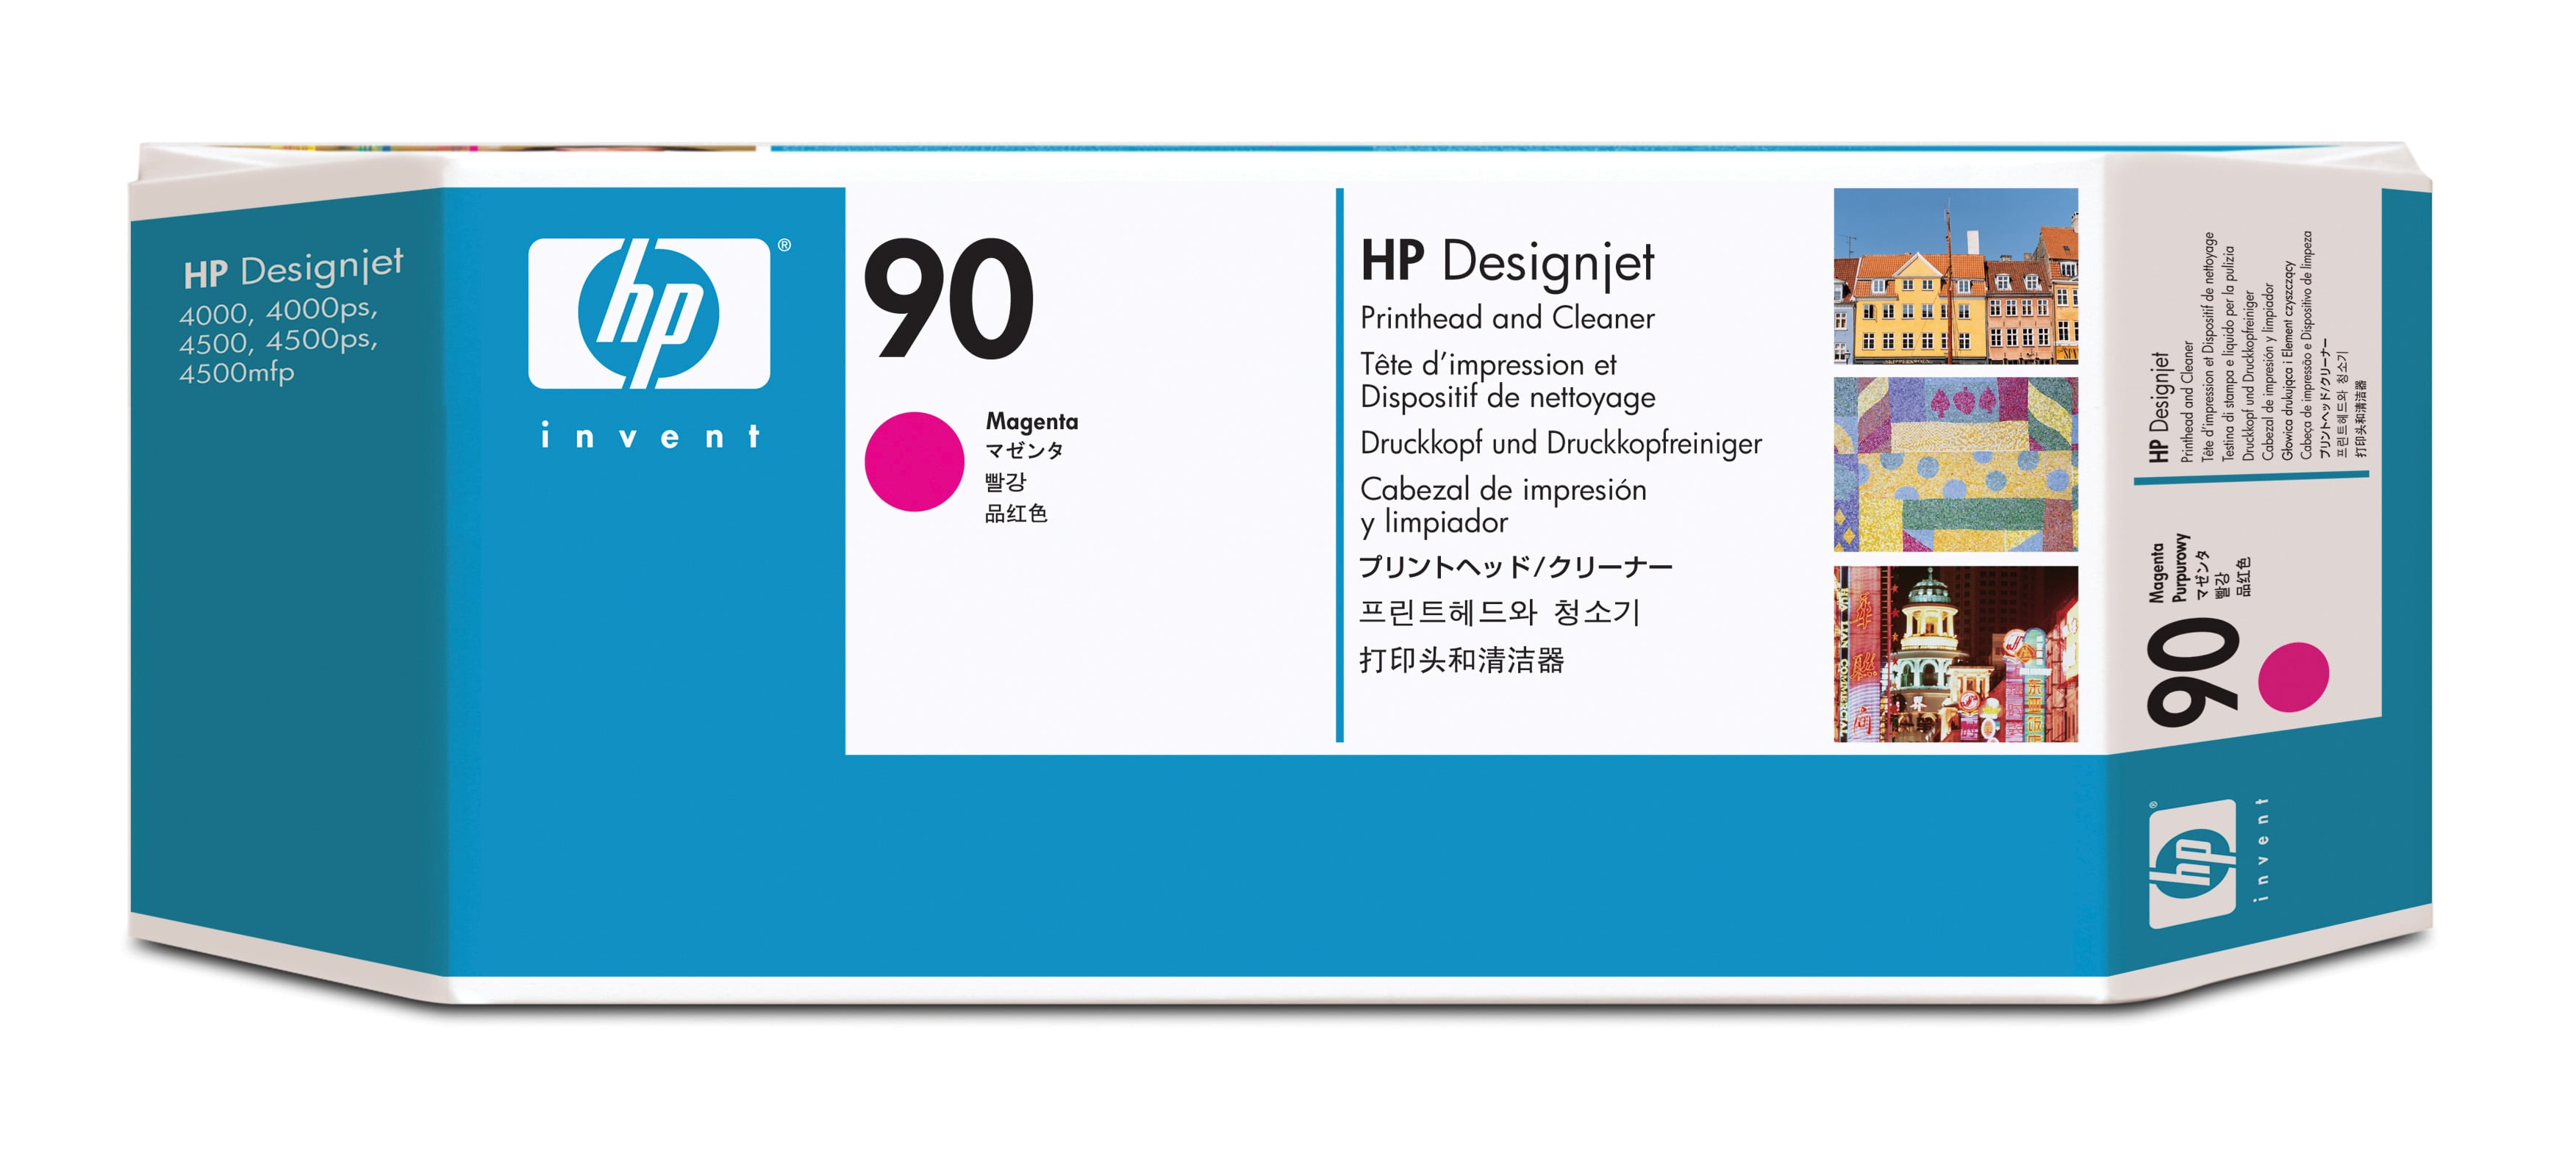 HP No. 90 Ink Printhead And Cleaner - Magenta C5056a